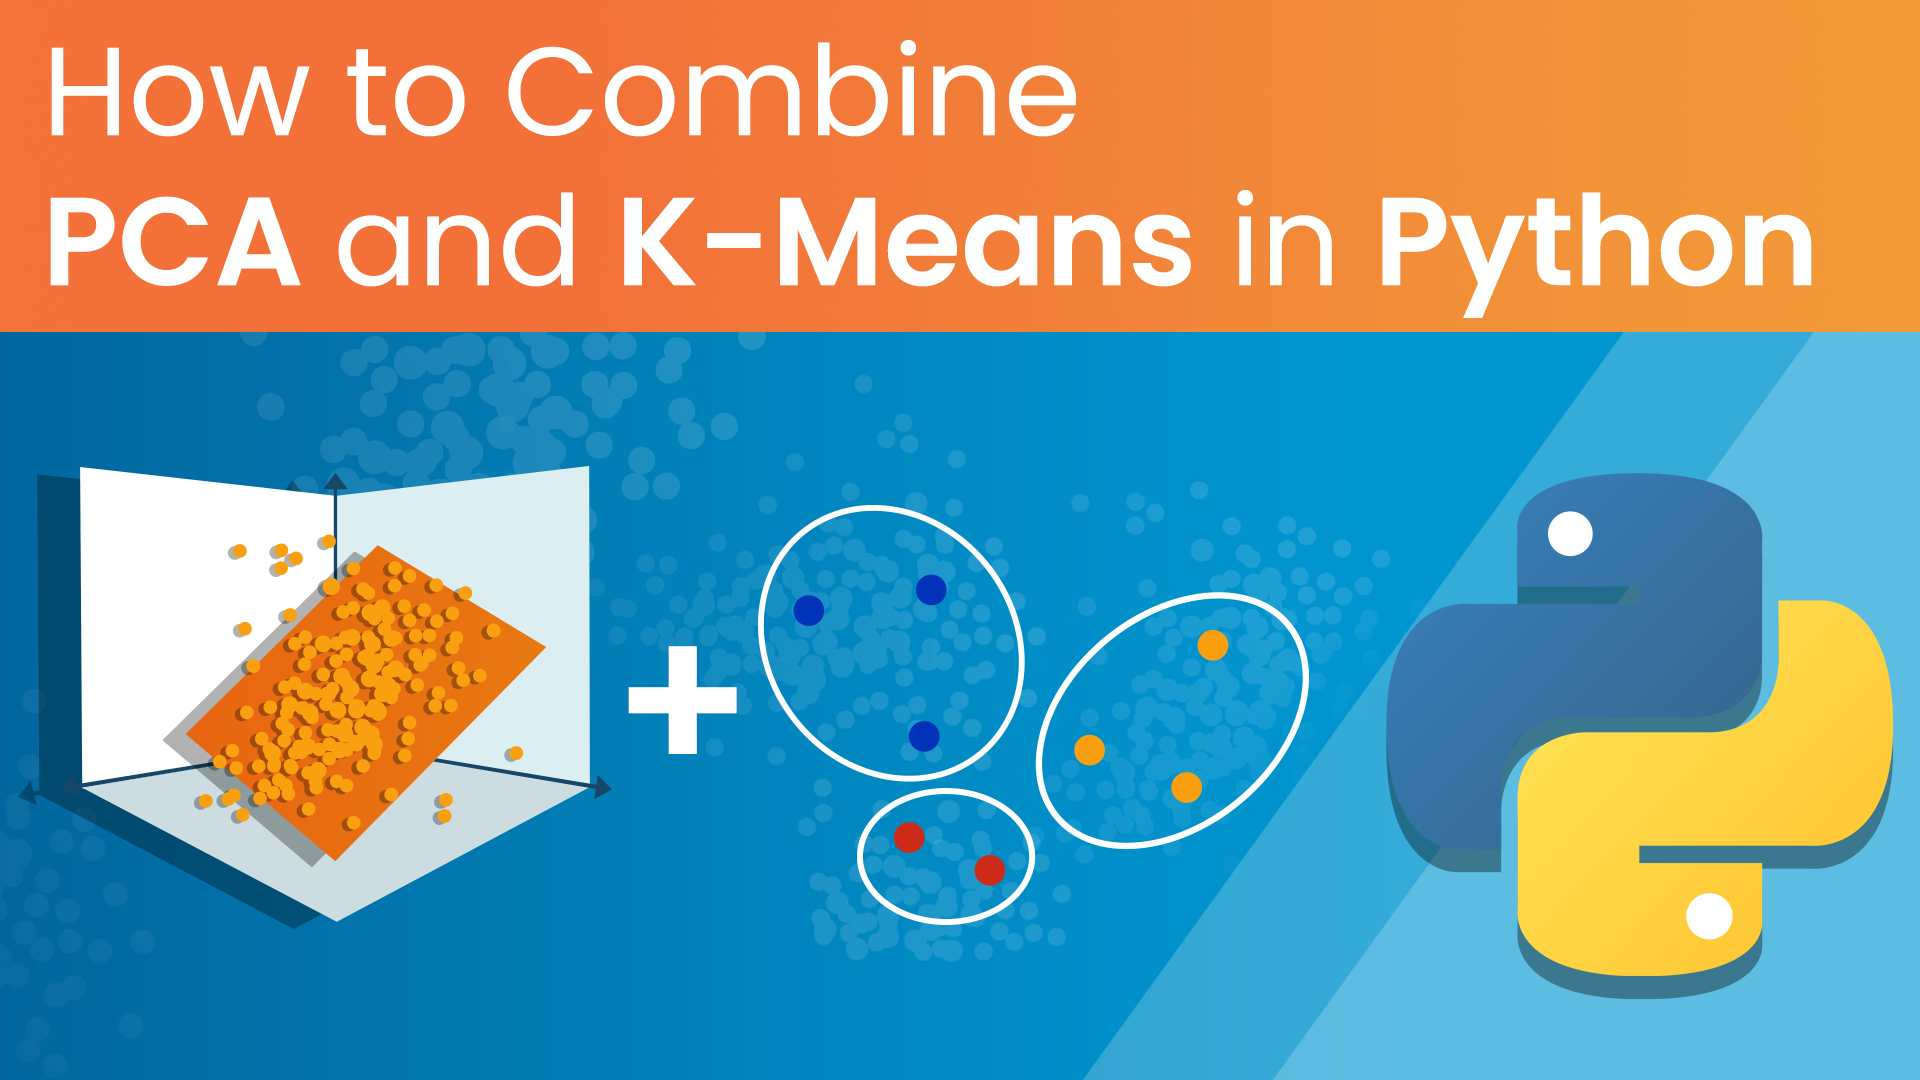 How to Combine PCA and K-means Clustering in Python?